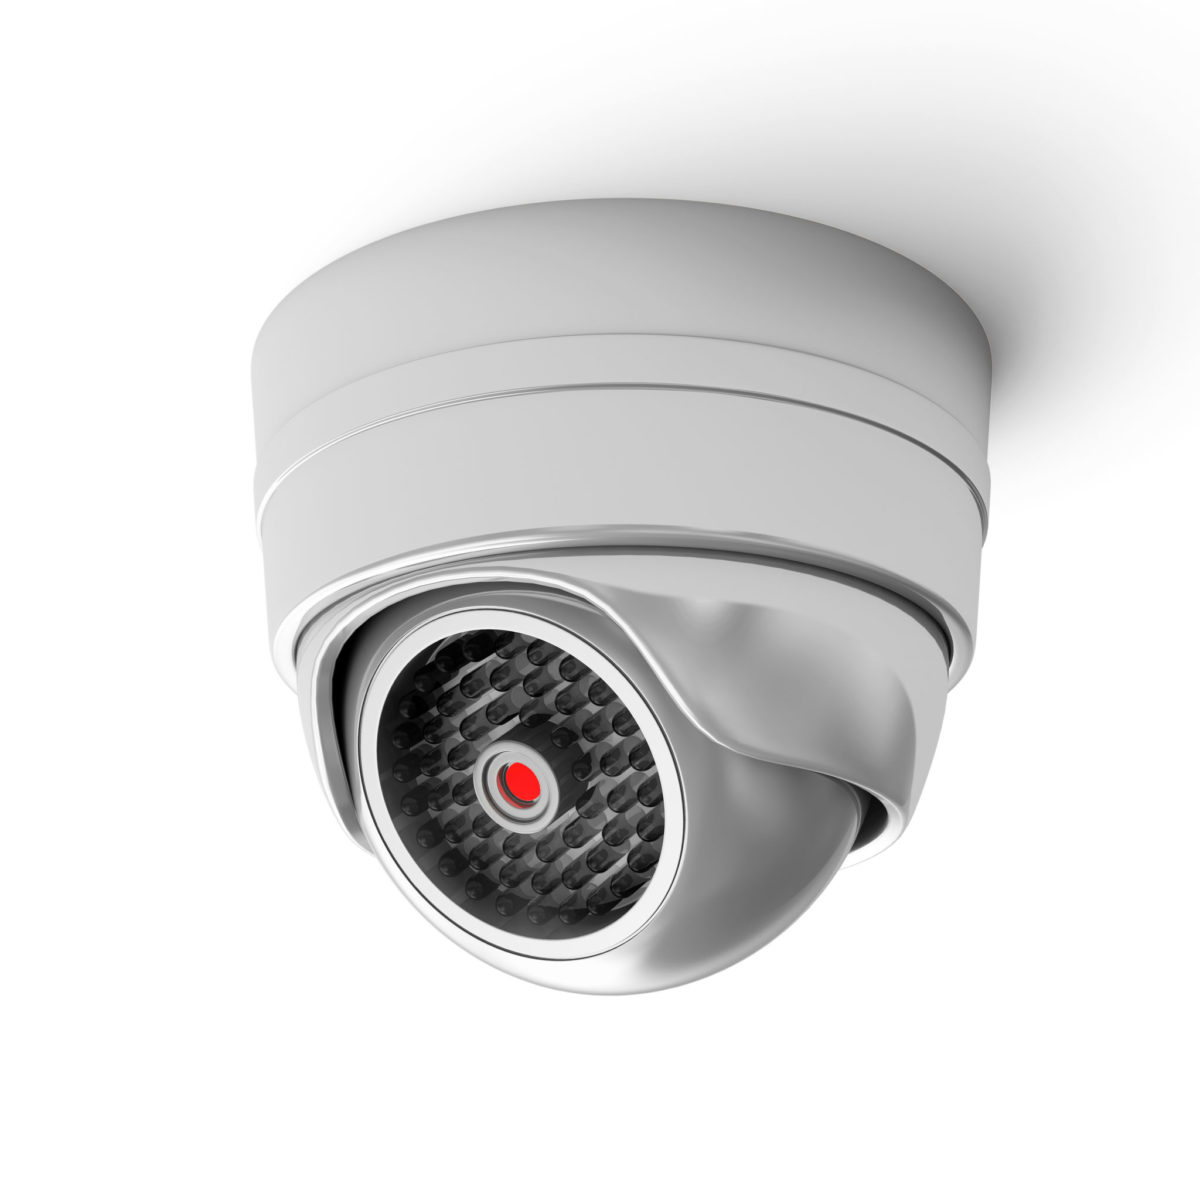 What Are the Different Types of Security Cameras?